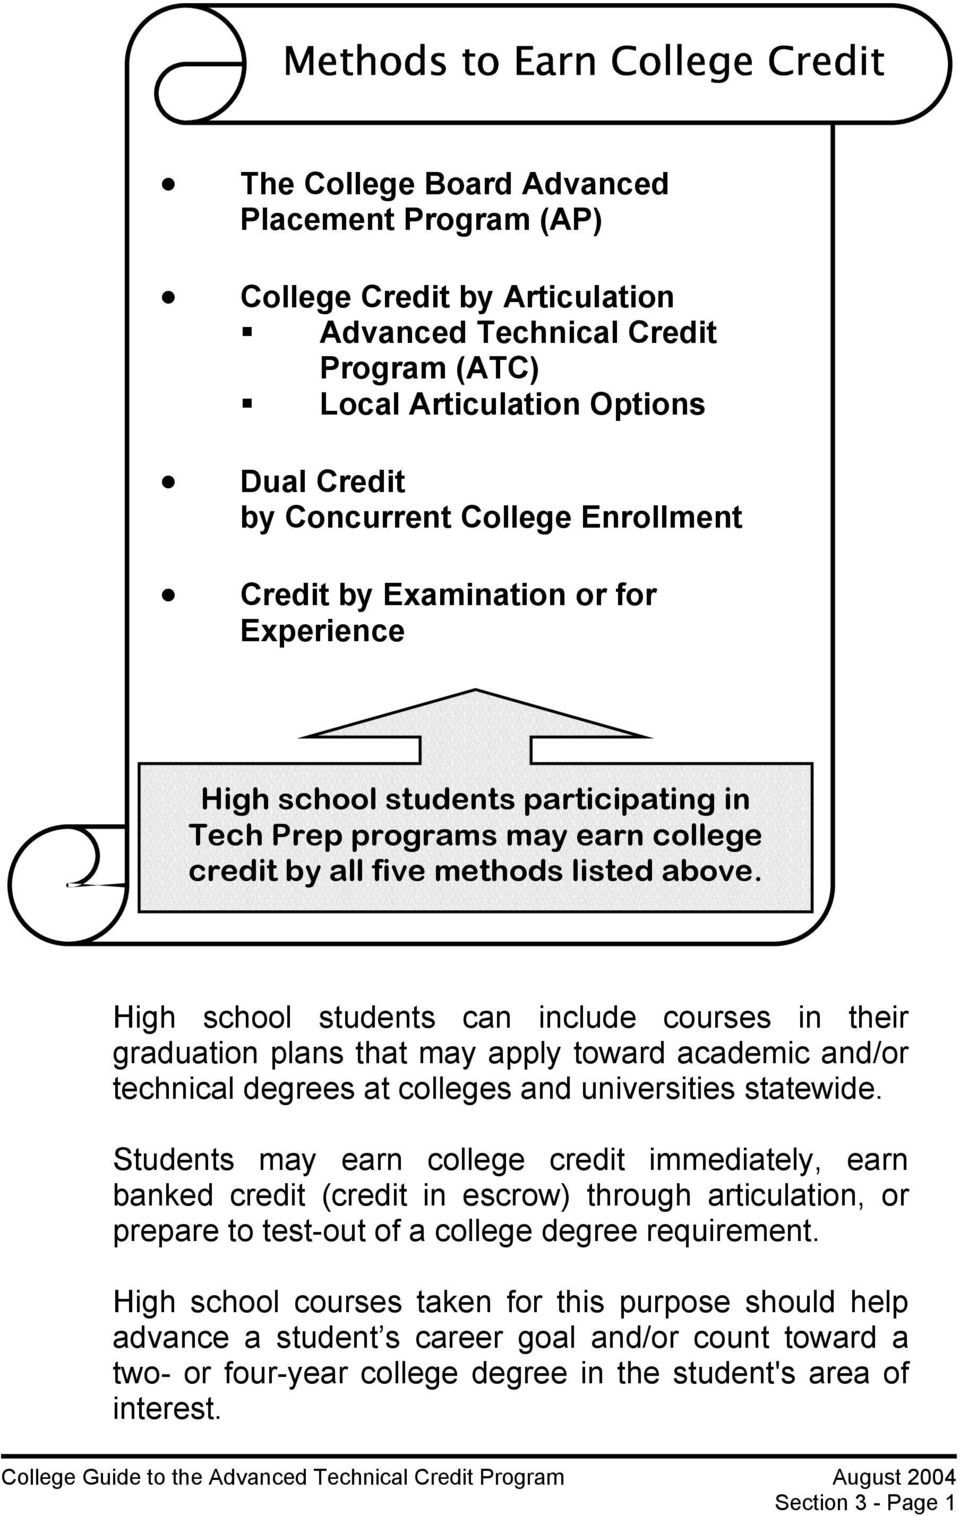 High school students can include courses in their graduation plans that may apply toward academic and/or technical degrees at colleges and universities statewide.